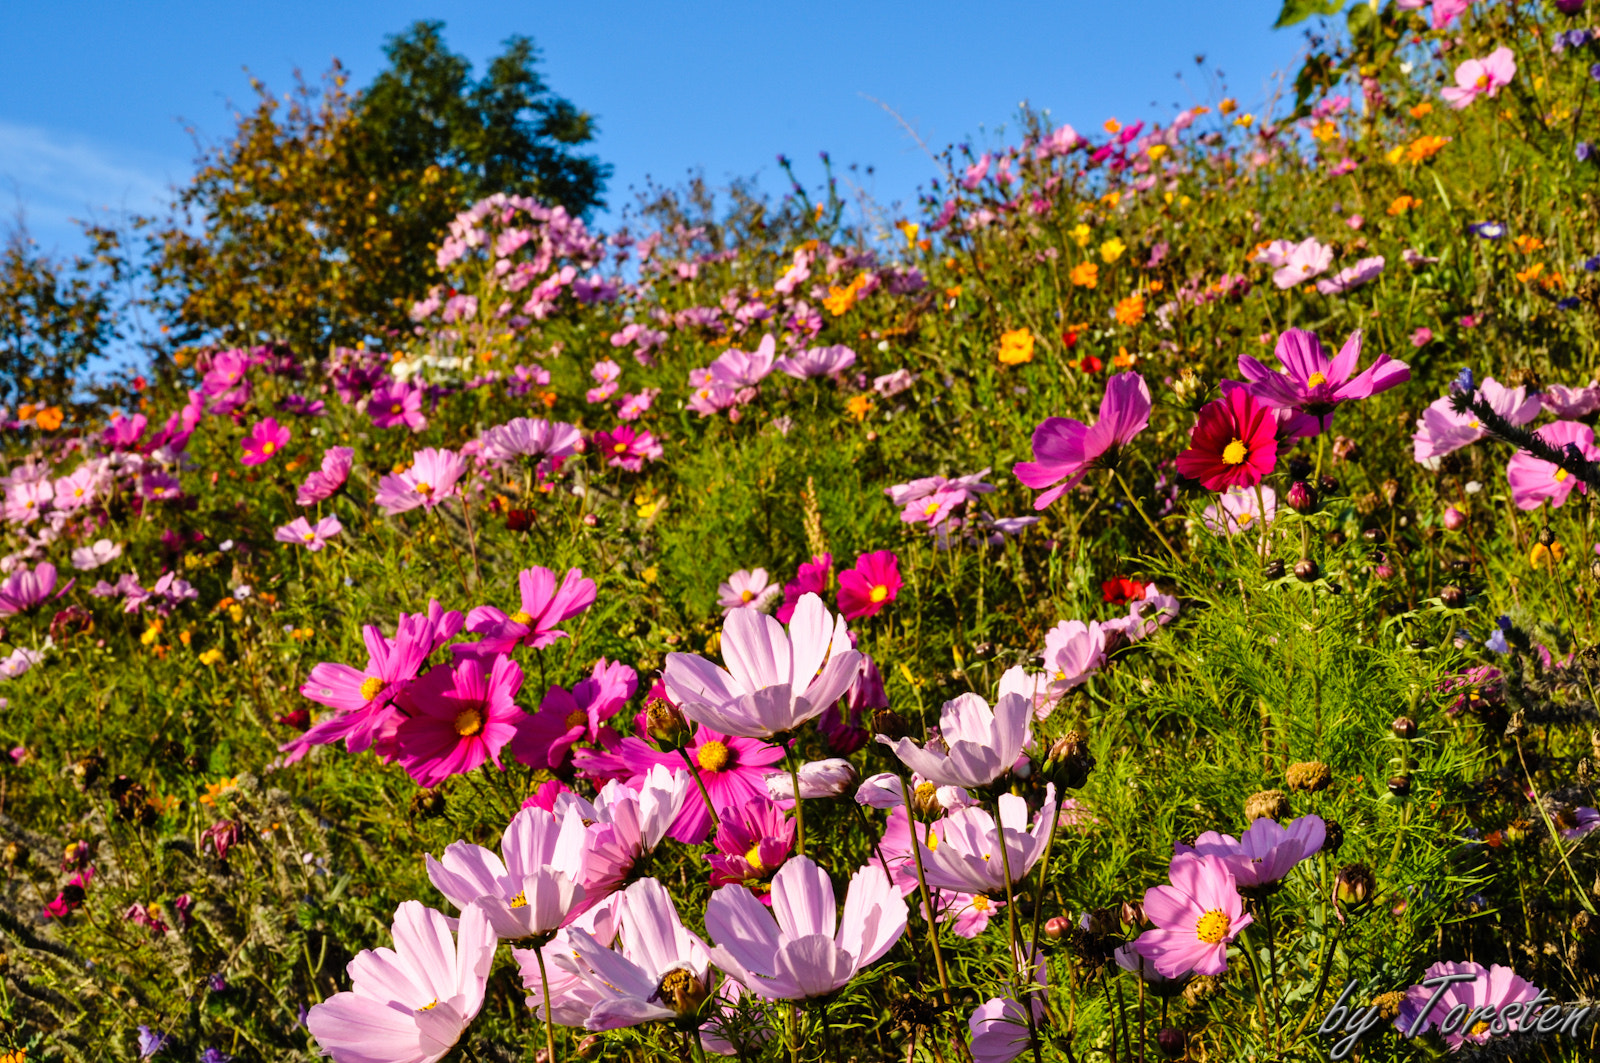 Photograph Sea of Flowers by Torsten Trunz on 500px